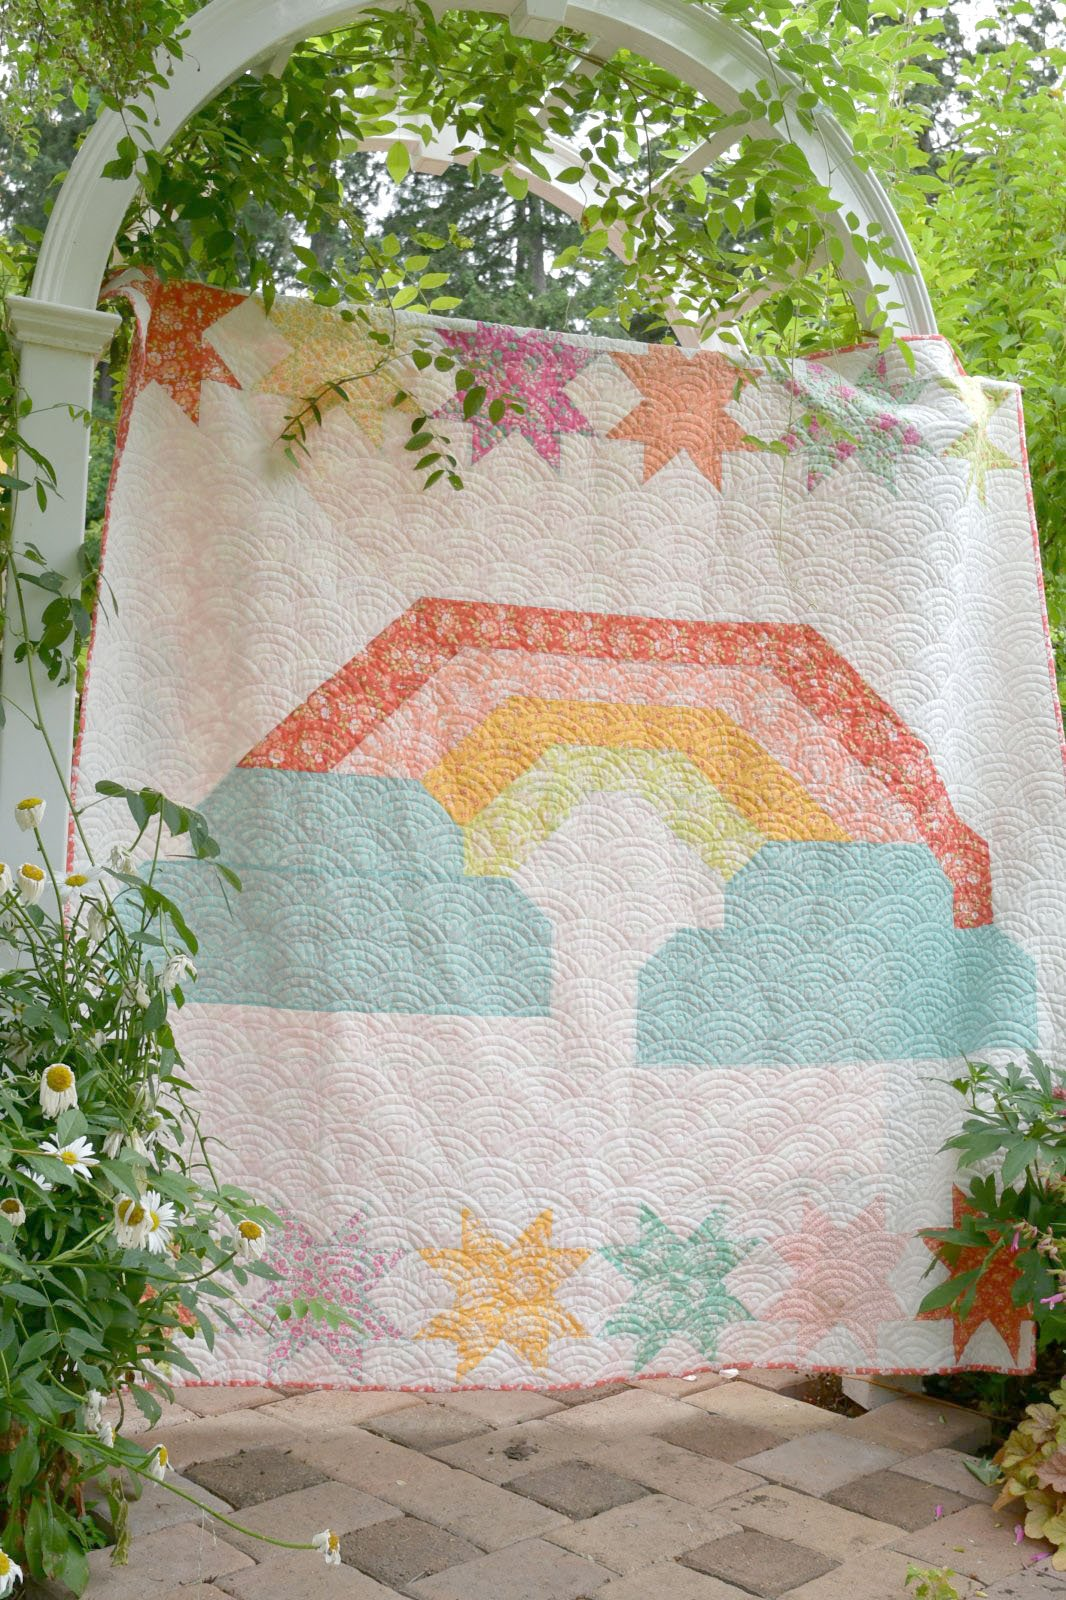 Over the Rainbow Quilt Kit with backing using Canning Day Fabric by Corey Yoder for Moda Fabrics